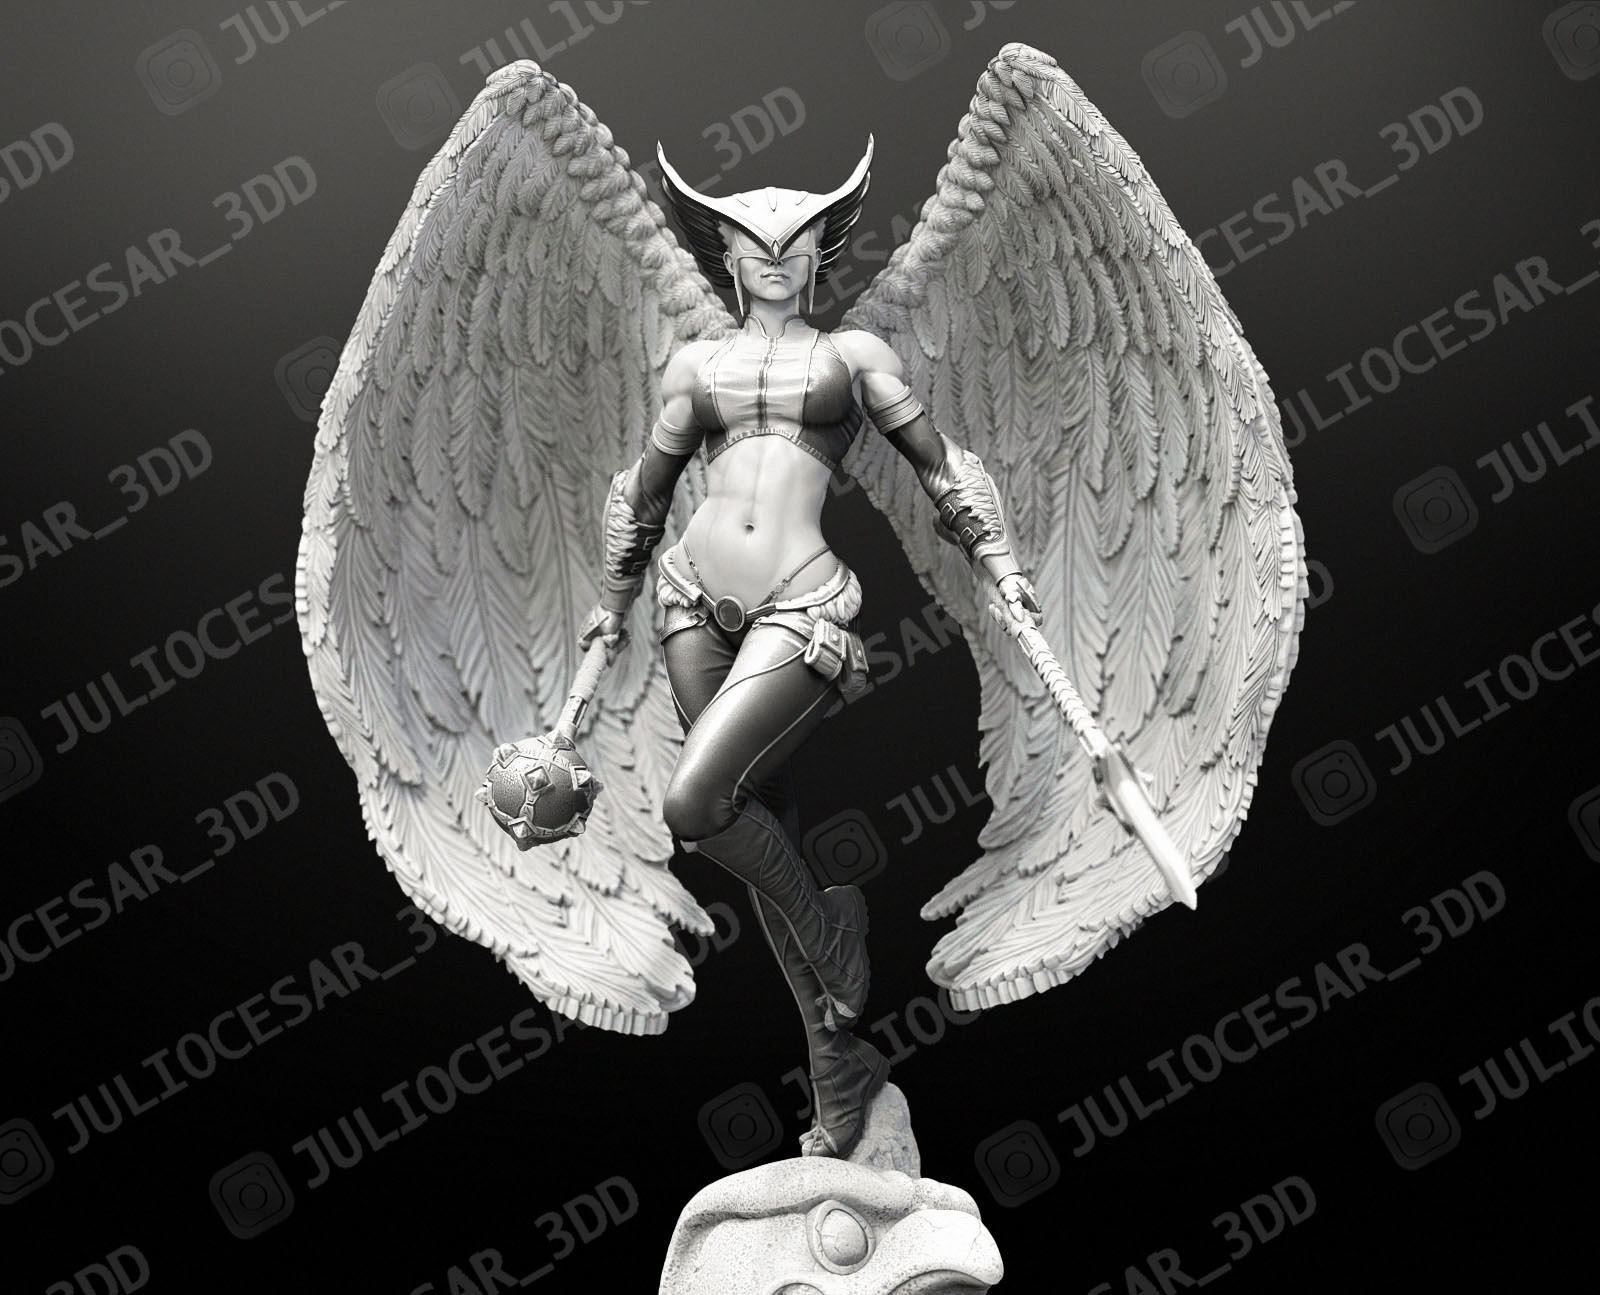 HawkGirl_miniaturaMA.jpg Download STL file HawkGirl • 3D printable template, JulioCesar_3DD